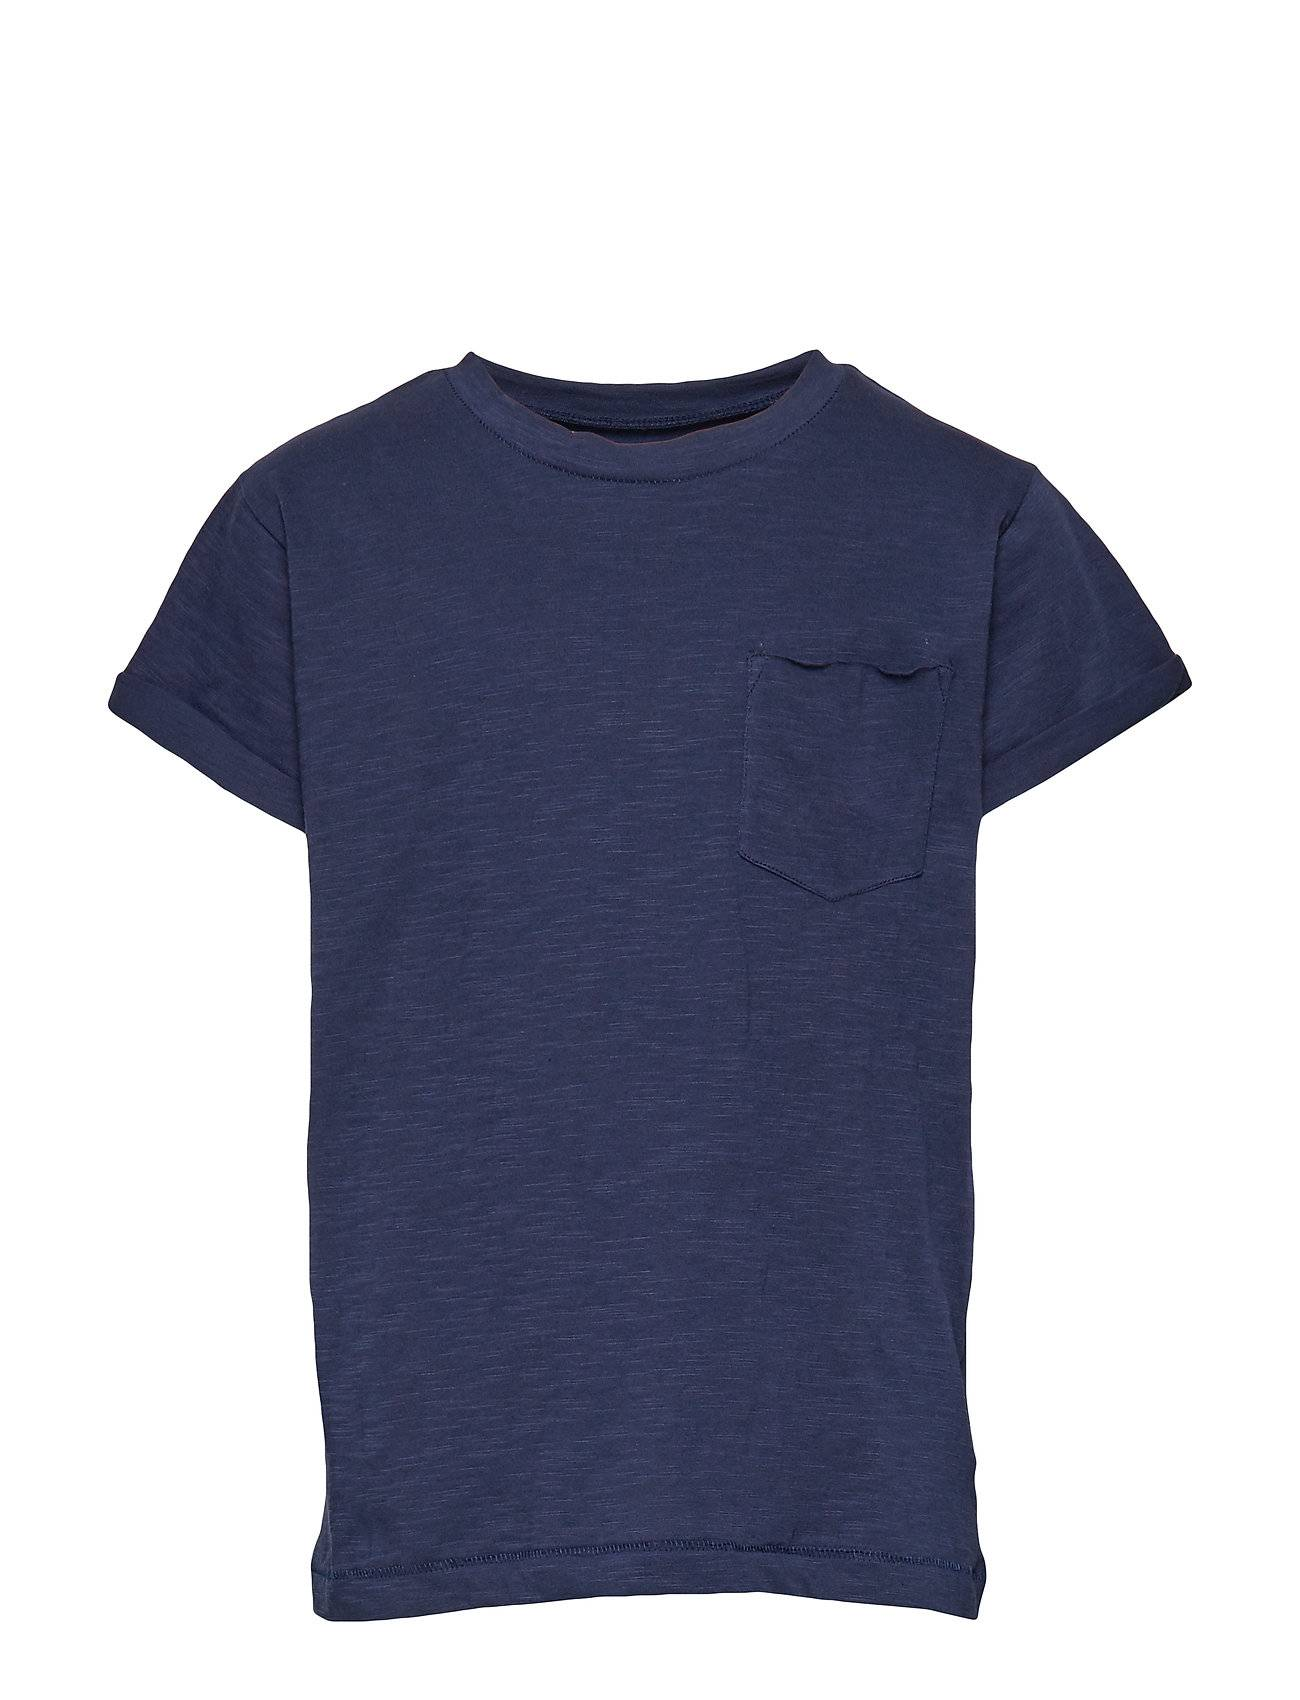 Hust & Claire T-Shirt T-shirts Short-sleeved Sininen Hust & Claire